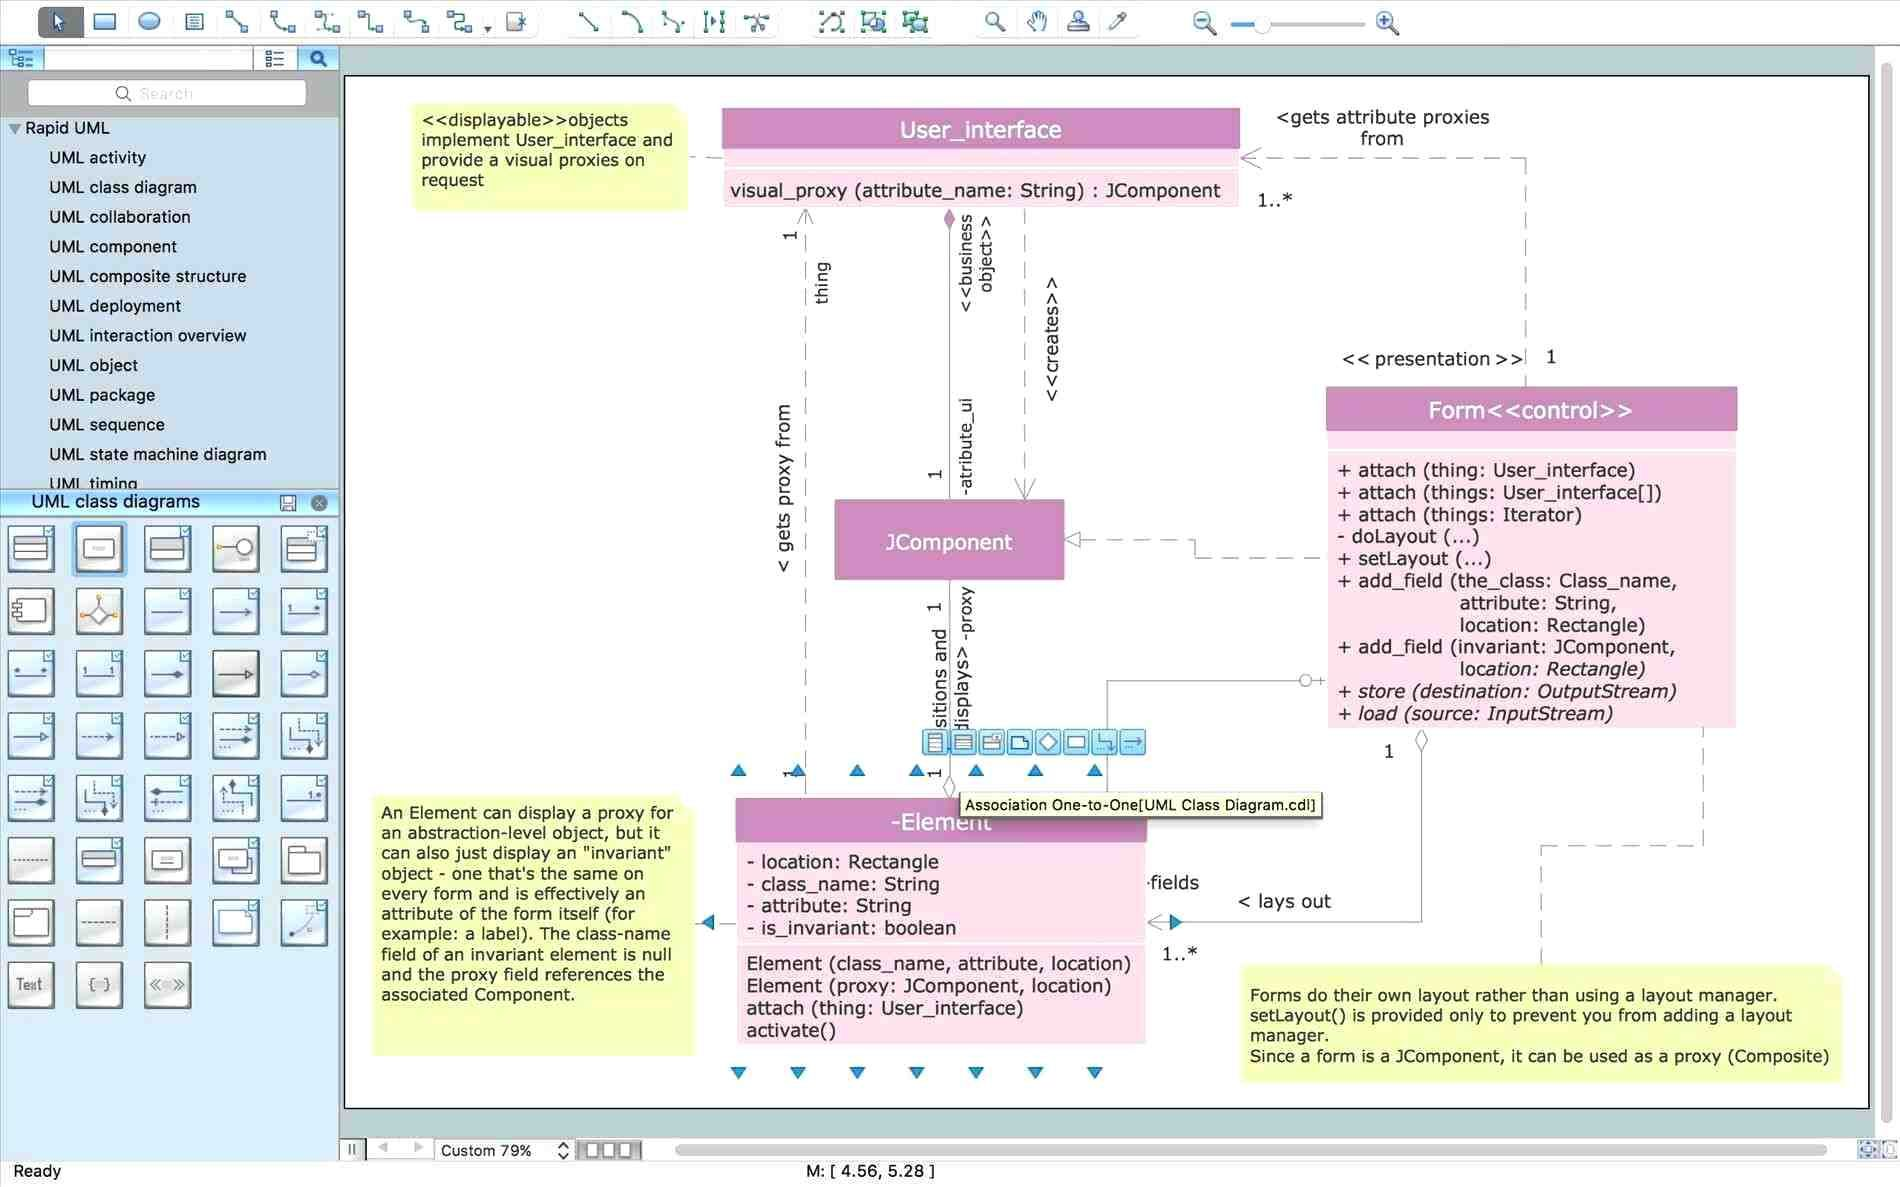 Use Case Diagram Visio Template 1998 Isuzu Rodeo Engine Diagrams Create Database Designs Online For Easy Visualisation Draw Sens